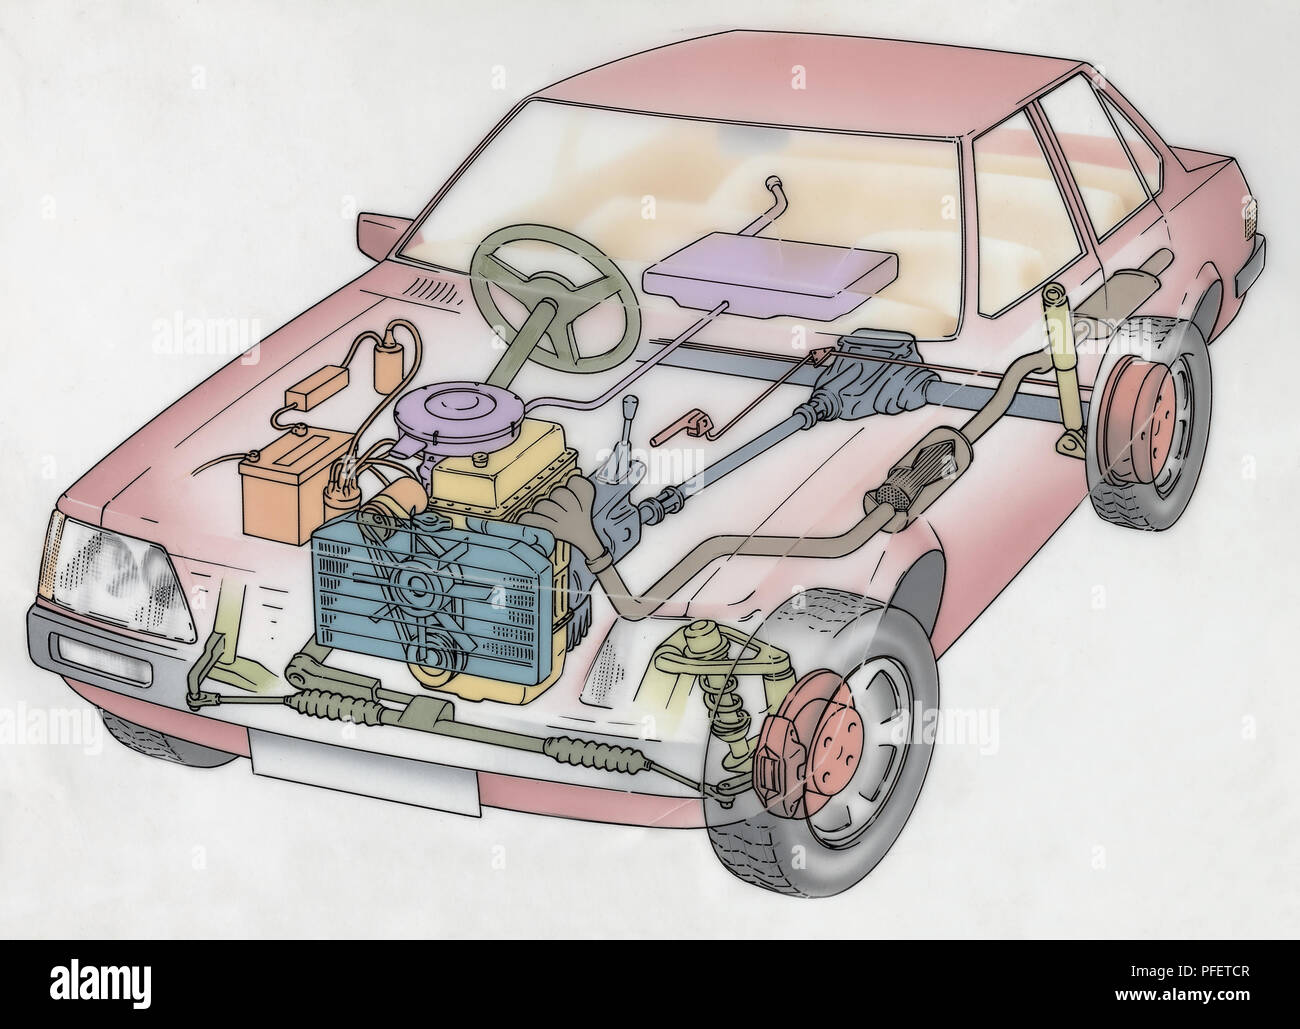 artwork-cross-section-diagram-of-a-car-showing-the-engine -radiator-battery-carburettor-drive-shaft-suspension-disc-brake-exhaust-system-and-fue-PFETCR.jpg